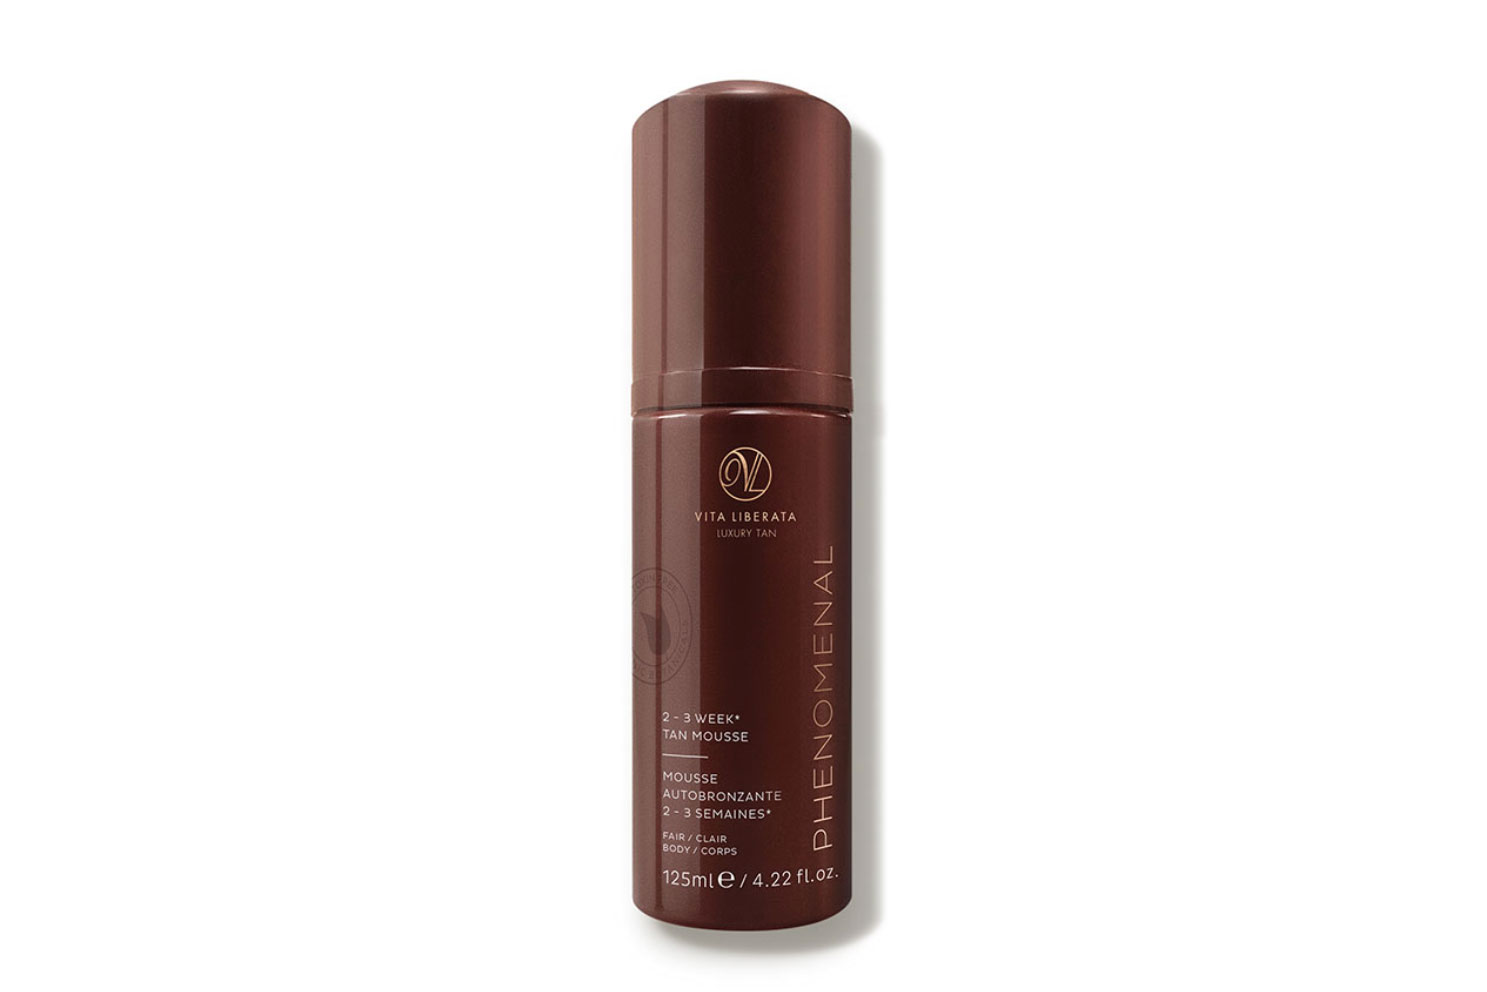 Vita Liberata pHenomenal Mousse: Paris